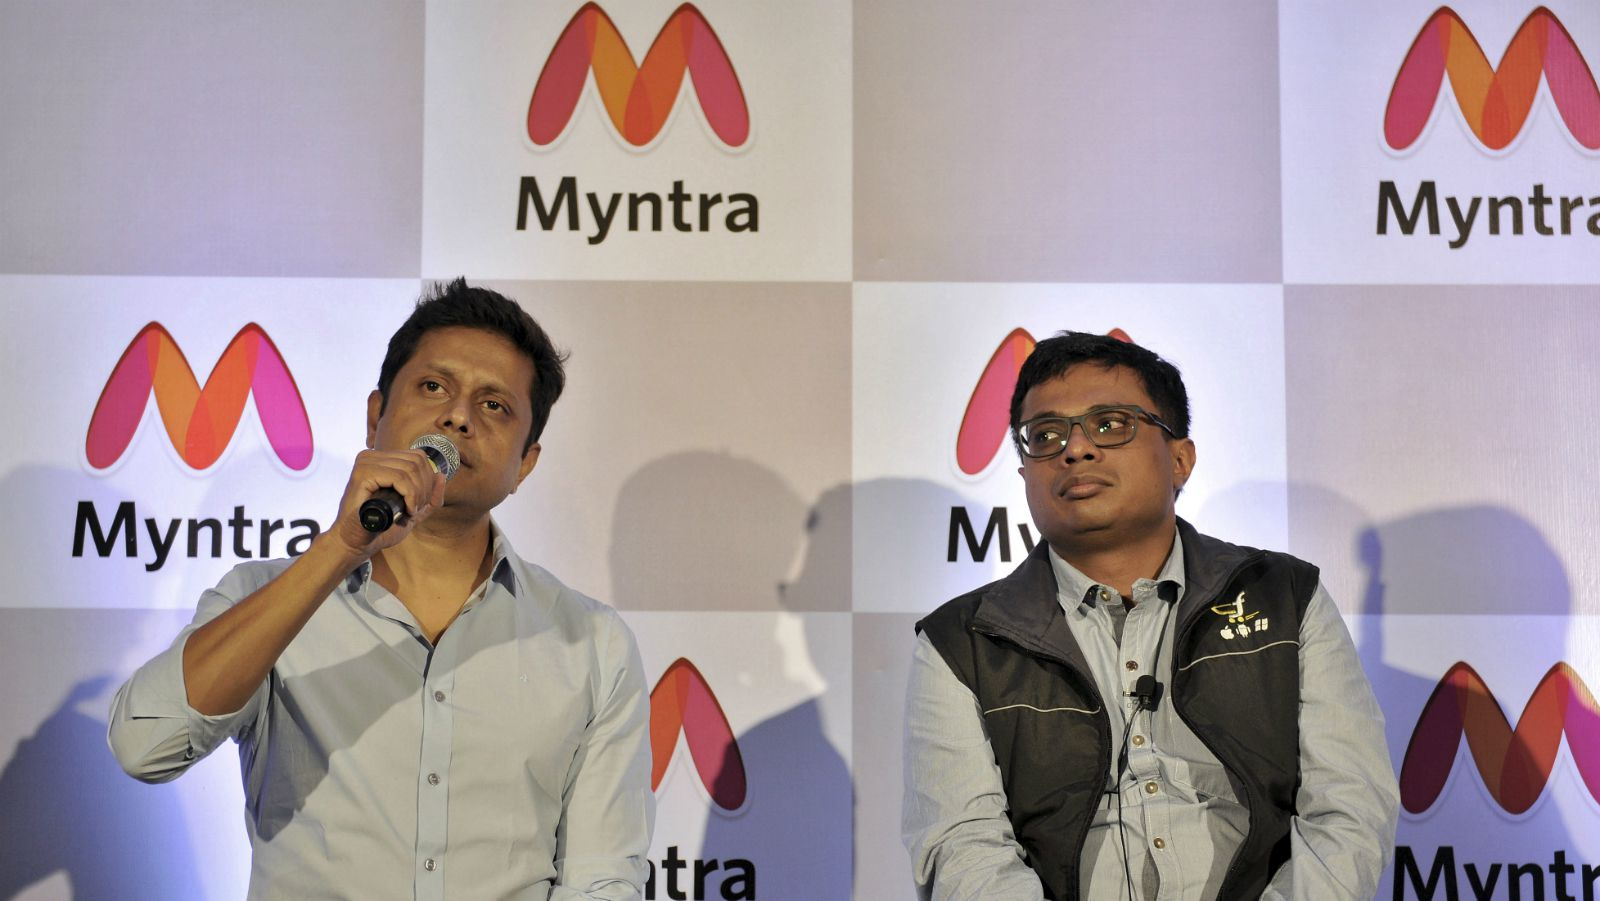 Chief Executive Officer of online fashion retailer Myntra, Mukesh Bansal (L) speaks during a news conference as Sachin Bansal, co-founder of India's biggest e-commerce firm Flipkart, watches in Bengaluru, India, May 12, 2015.